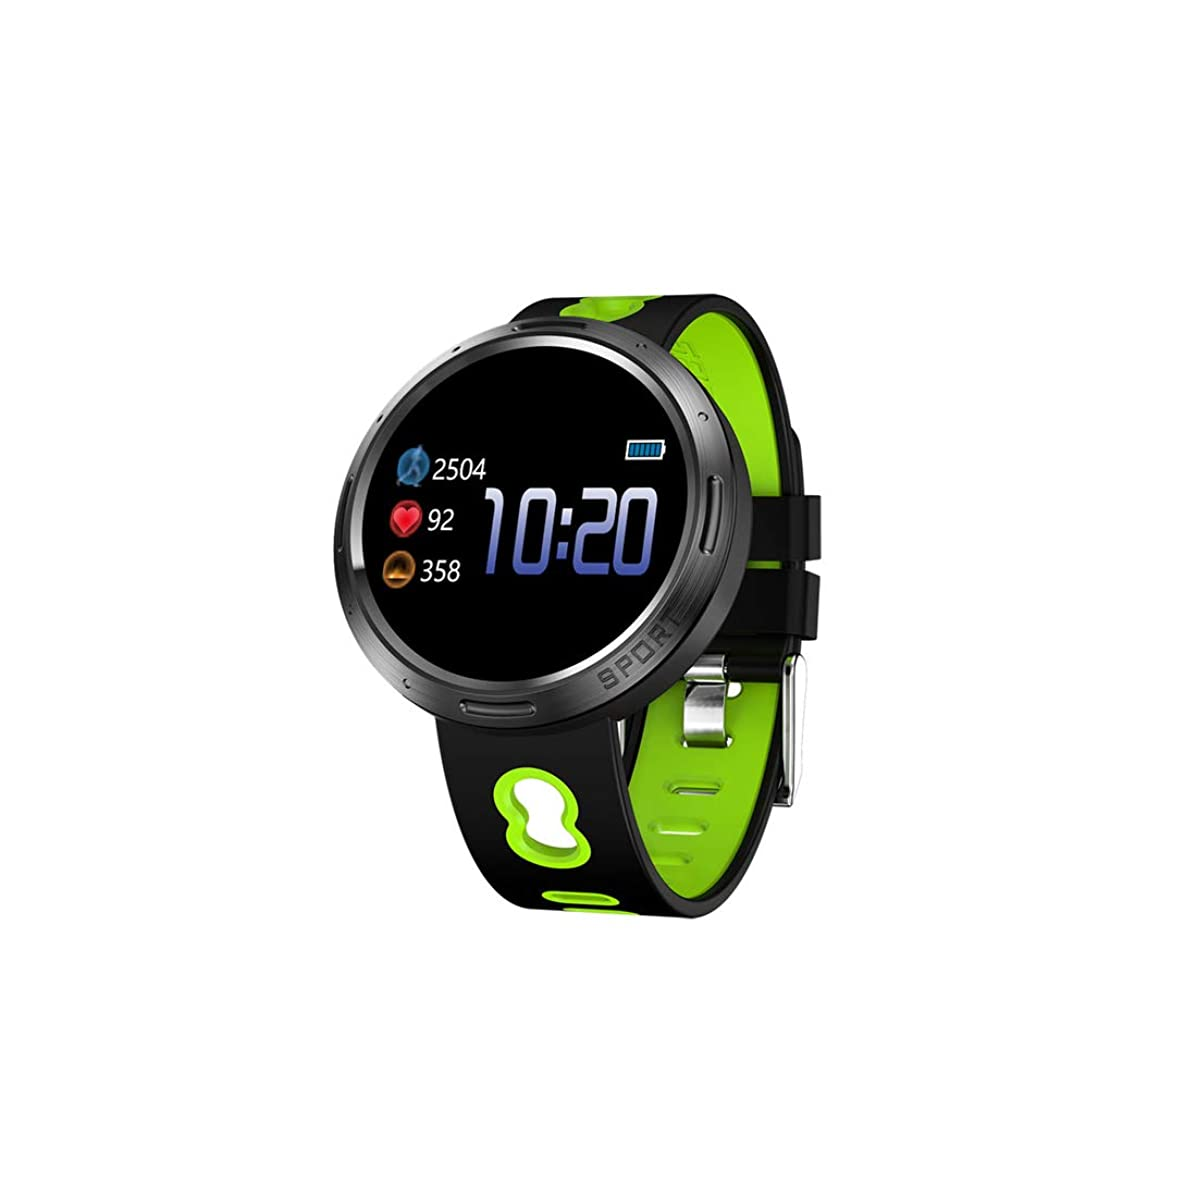 Youthly 2019 Smartwatch Men IP67 Waterproof Smart Watch Women Fitness Tracker Heart Rate Monitor Message Reminder for iOS Android Phone